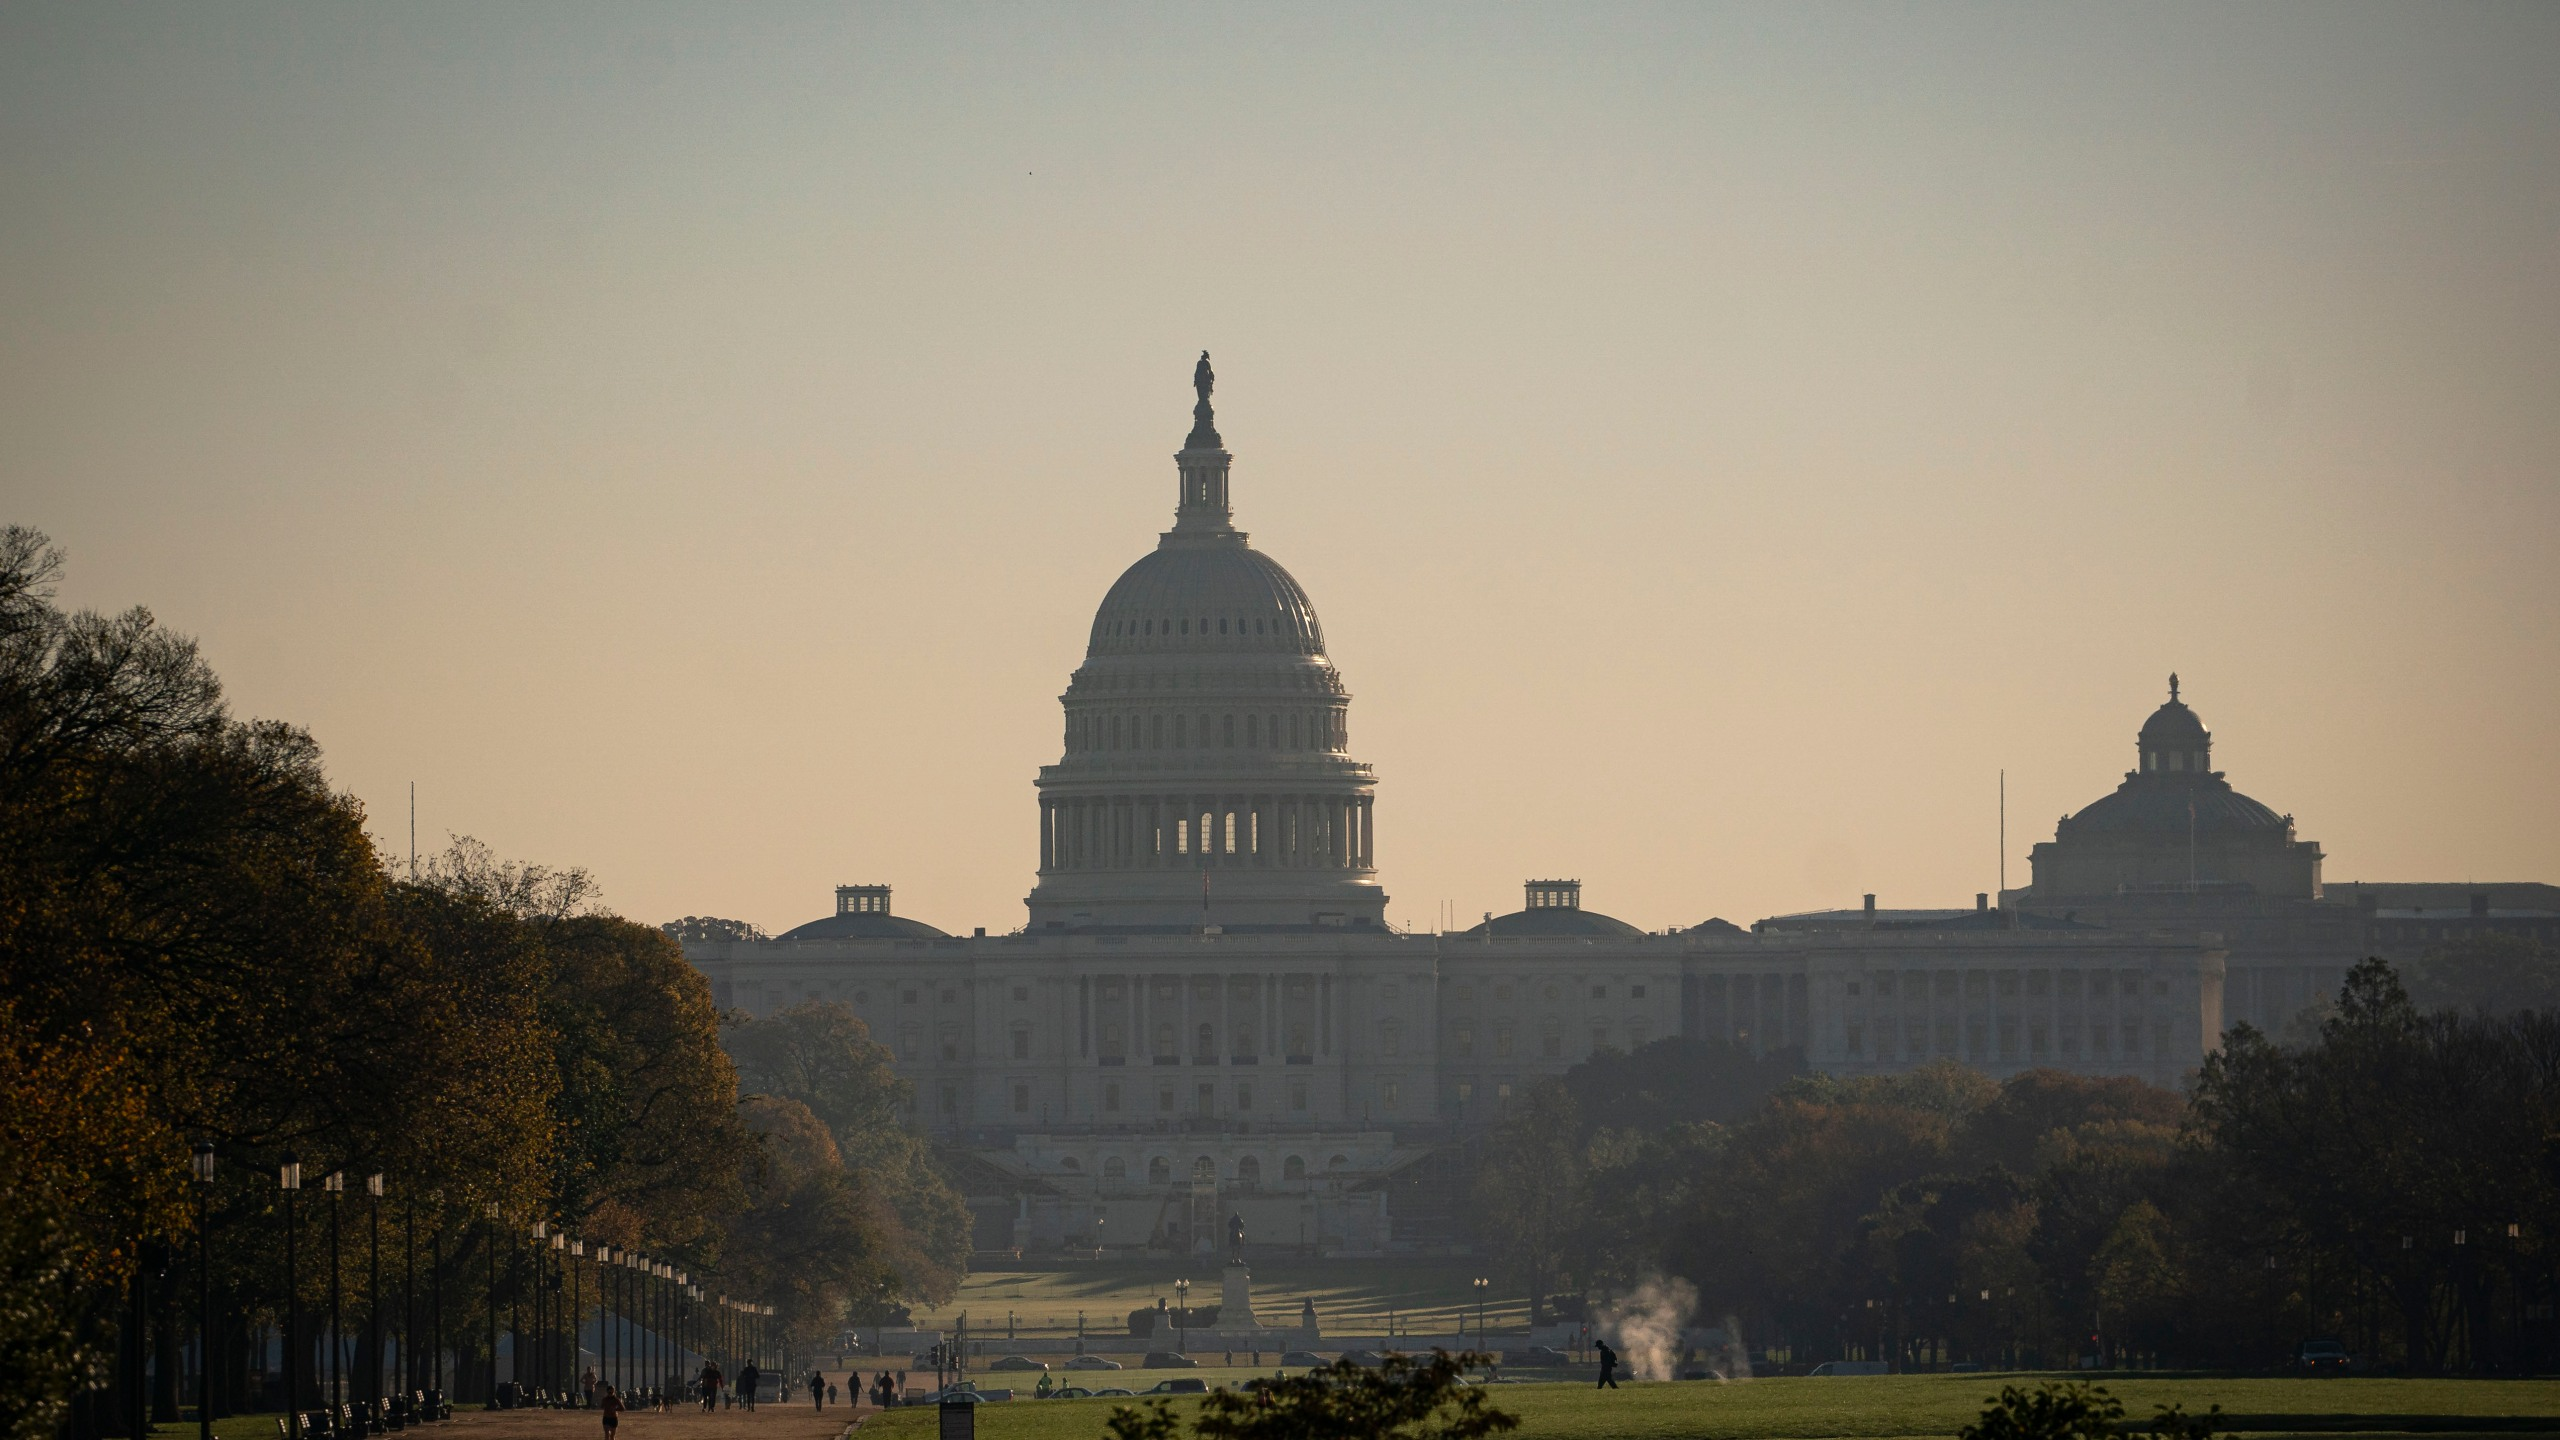 The U.S. Capitol is seen in the morning hours on November 4, 2020 in Washington, DC. (Al Drago/Getty Images)